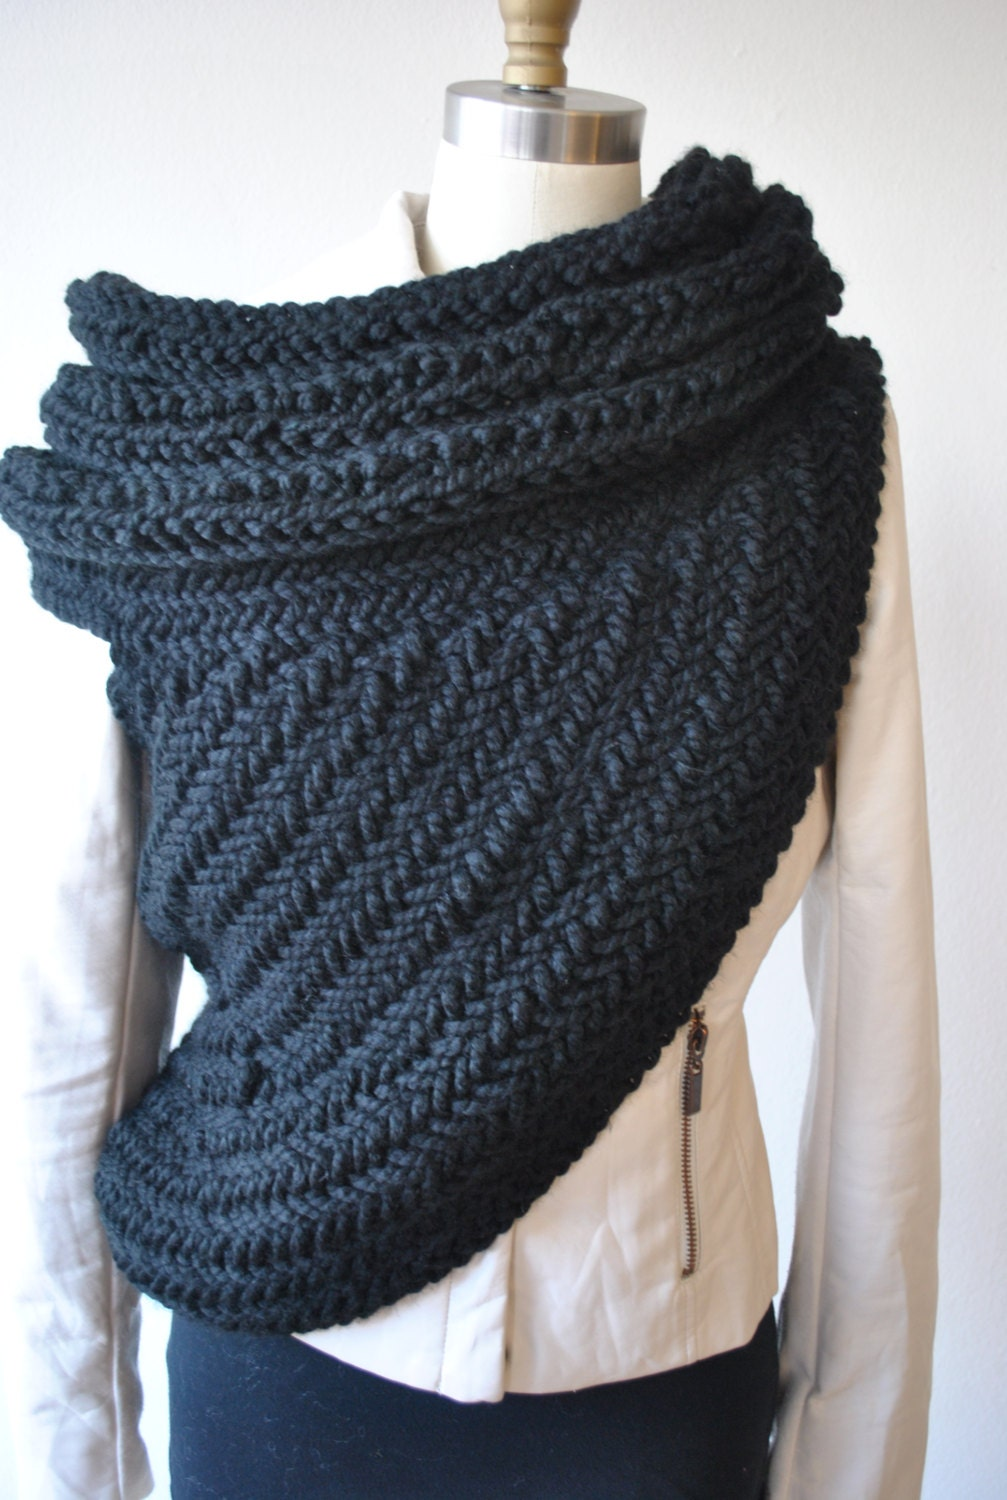 Cowl Vest Knitting Pattern Free : Huntress cowl Chunky Cowl Post Apocalyptic Sweater Vest